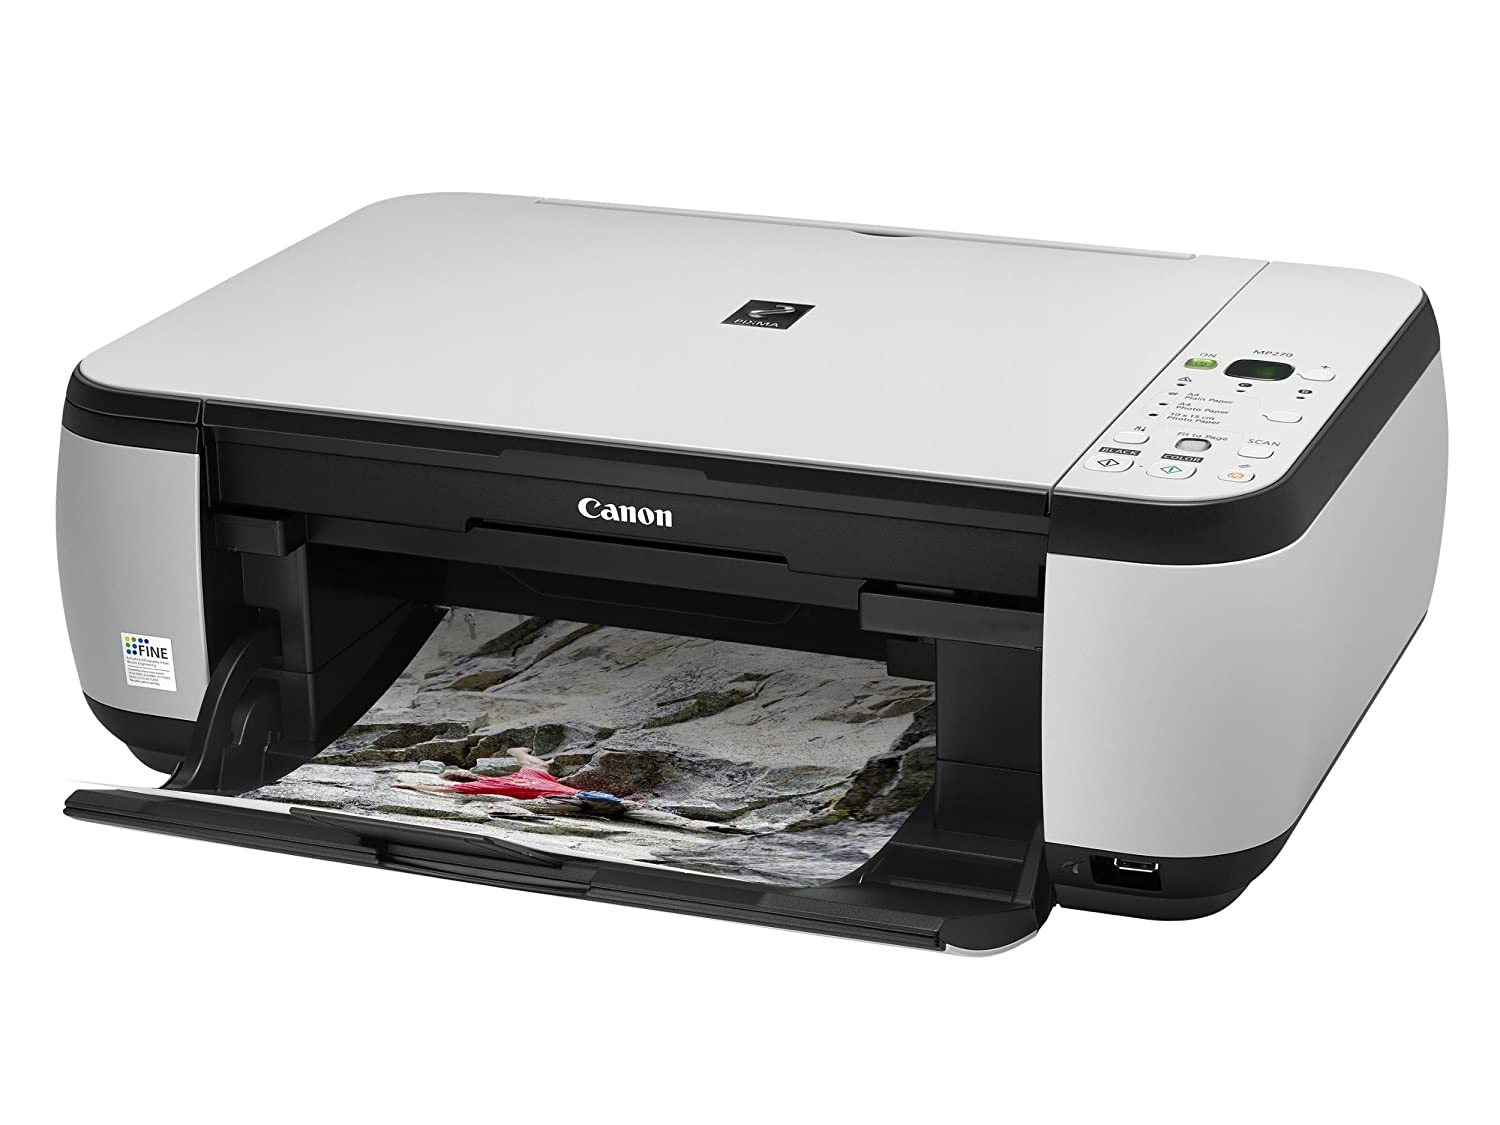 CANON MP270 SCANNER DRIVERS (2019)